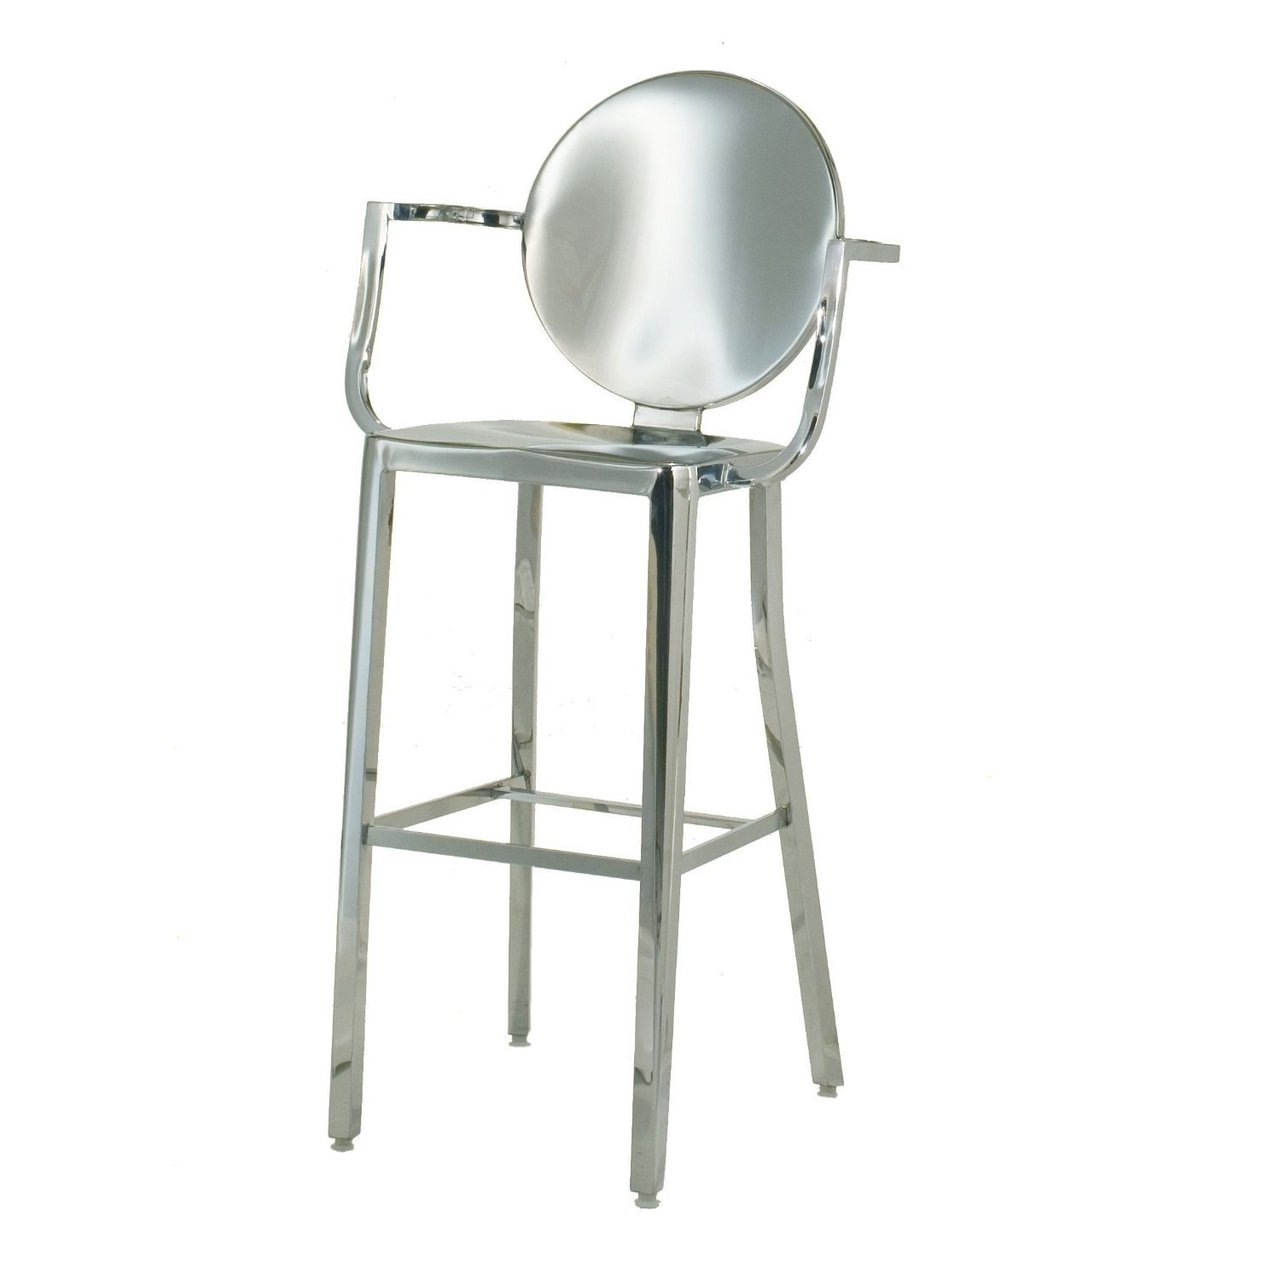 Occ King Bar Height Stool 30 Inch With Arms Arm Chair